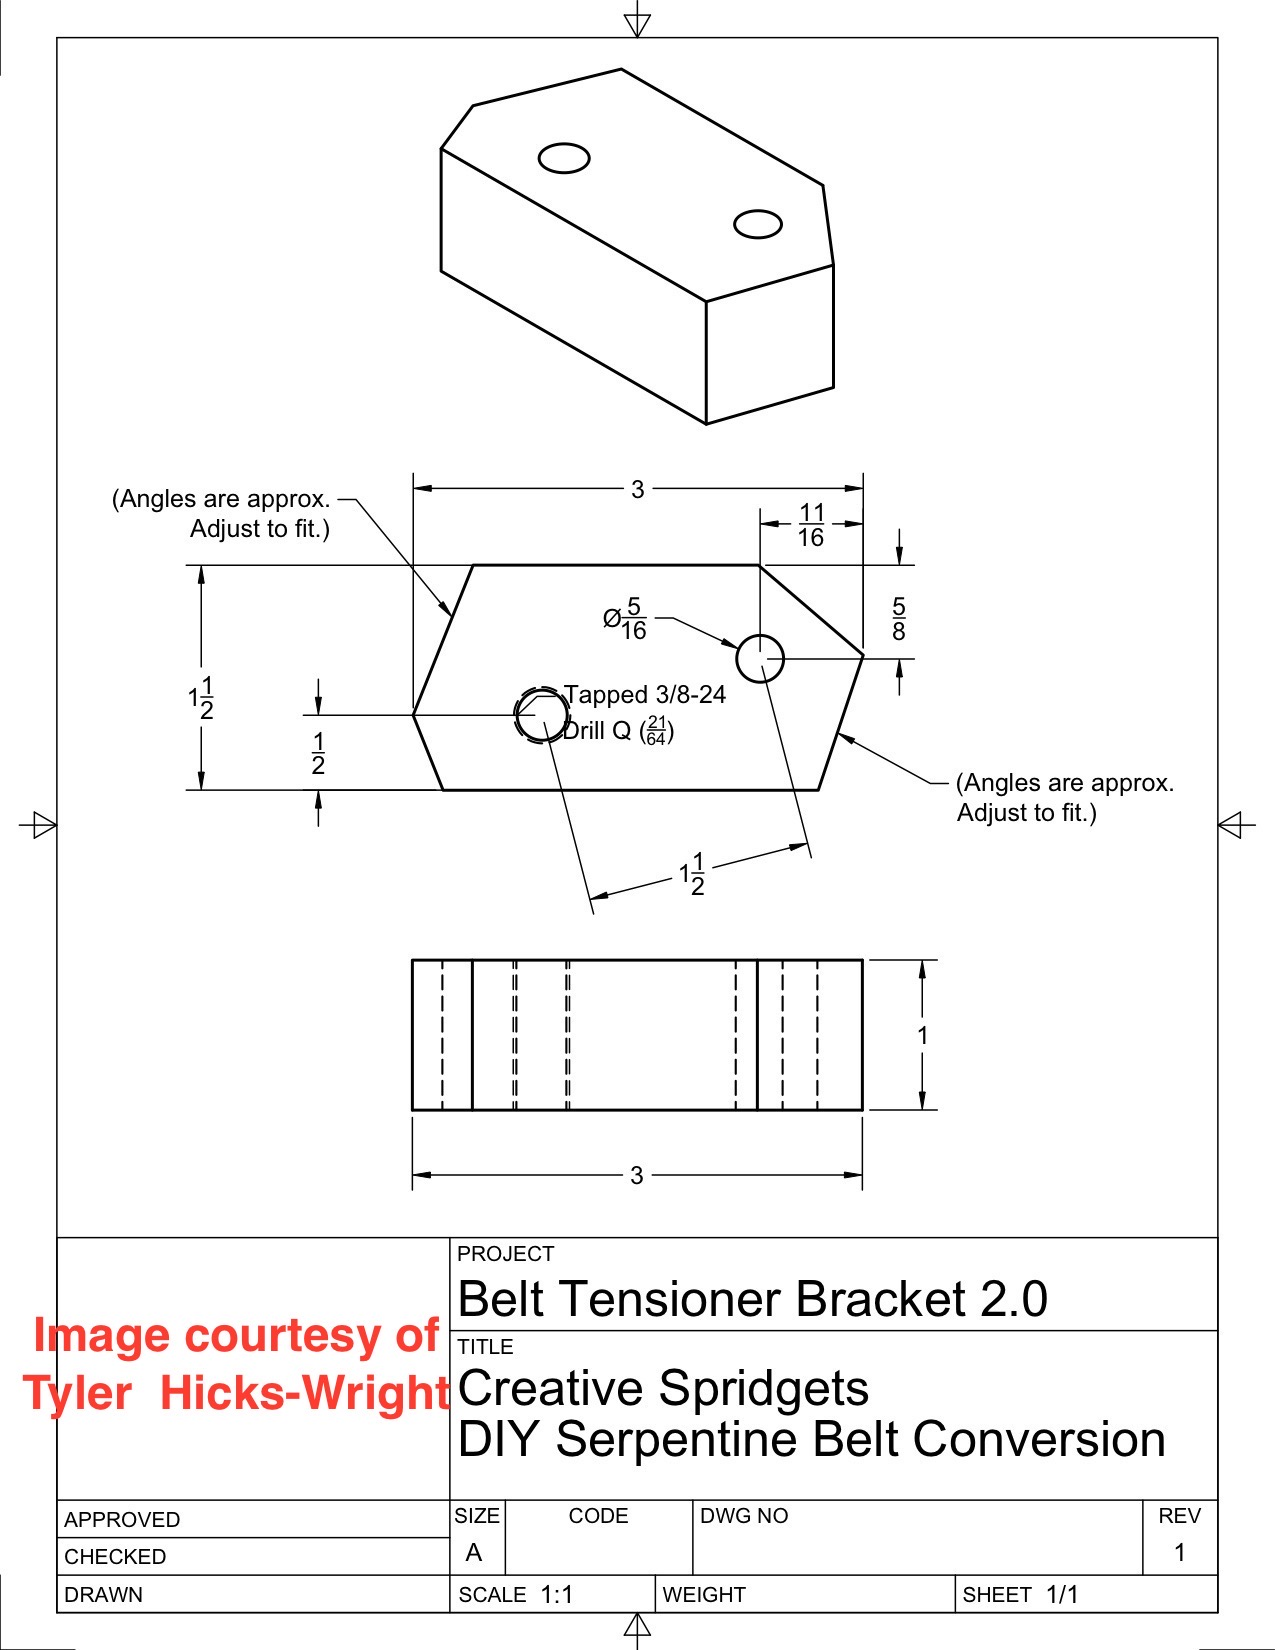 Belt Tensioner Bracket 2.0 copy.jpg